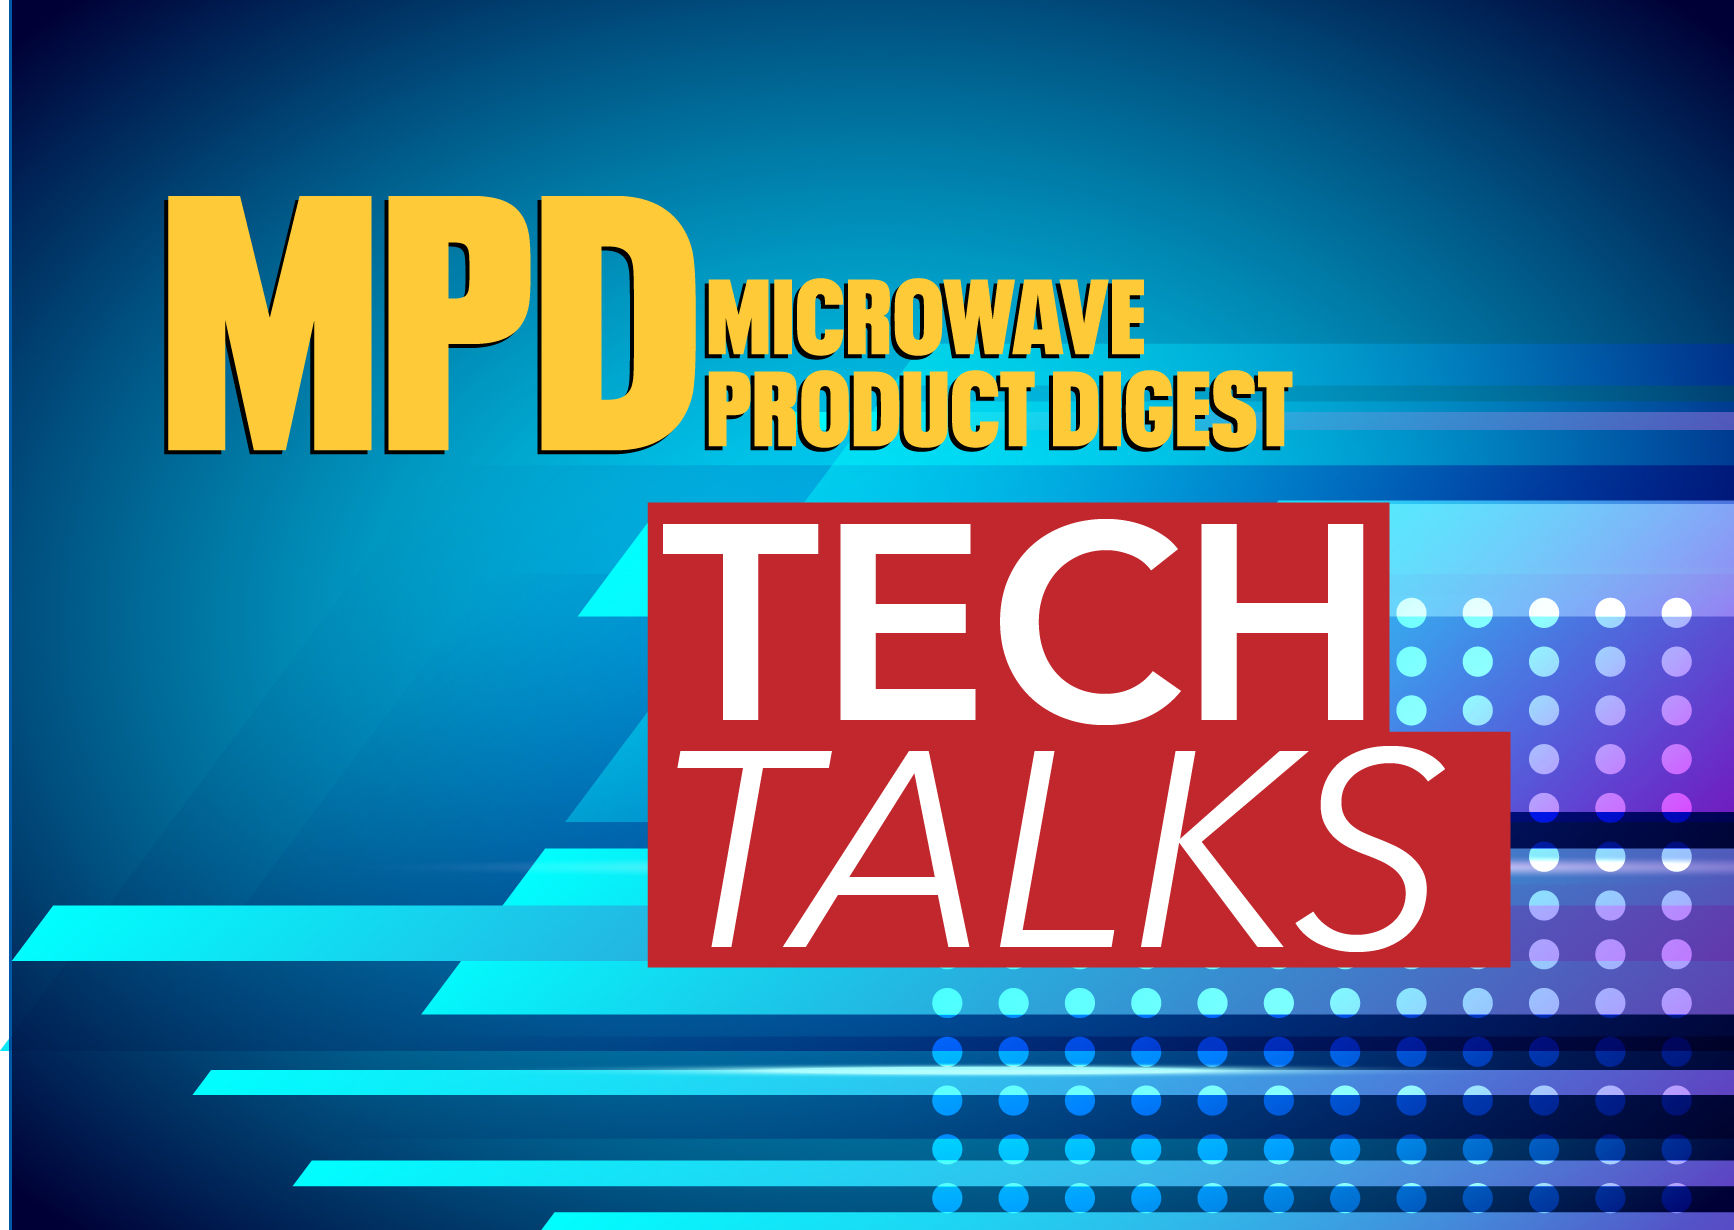 Microwave Product Digest – Tech Talks Introduction